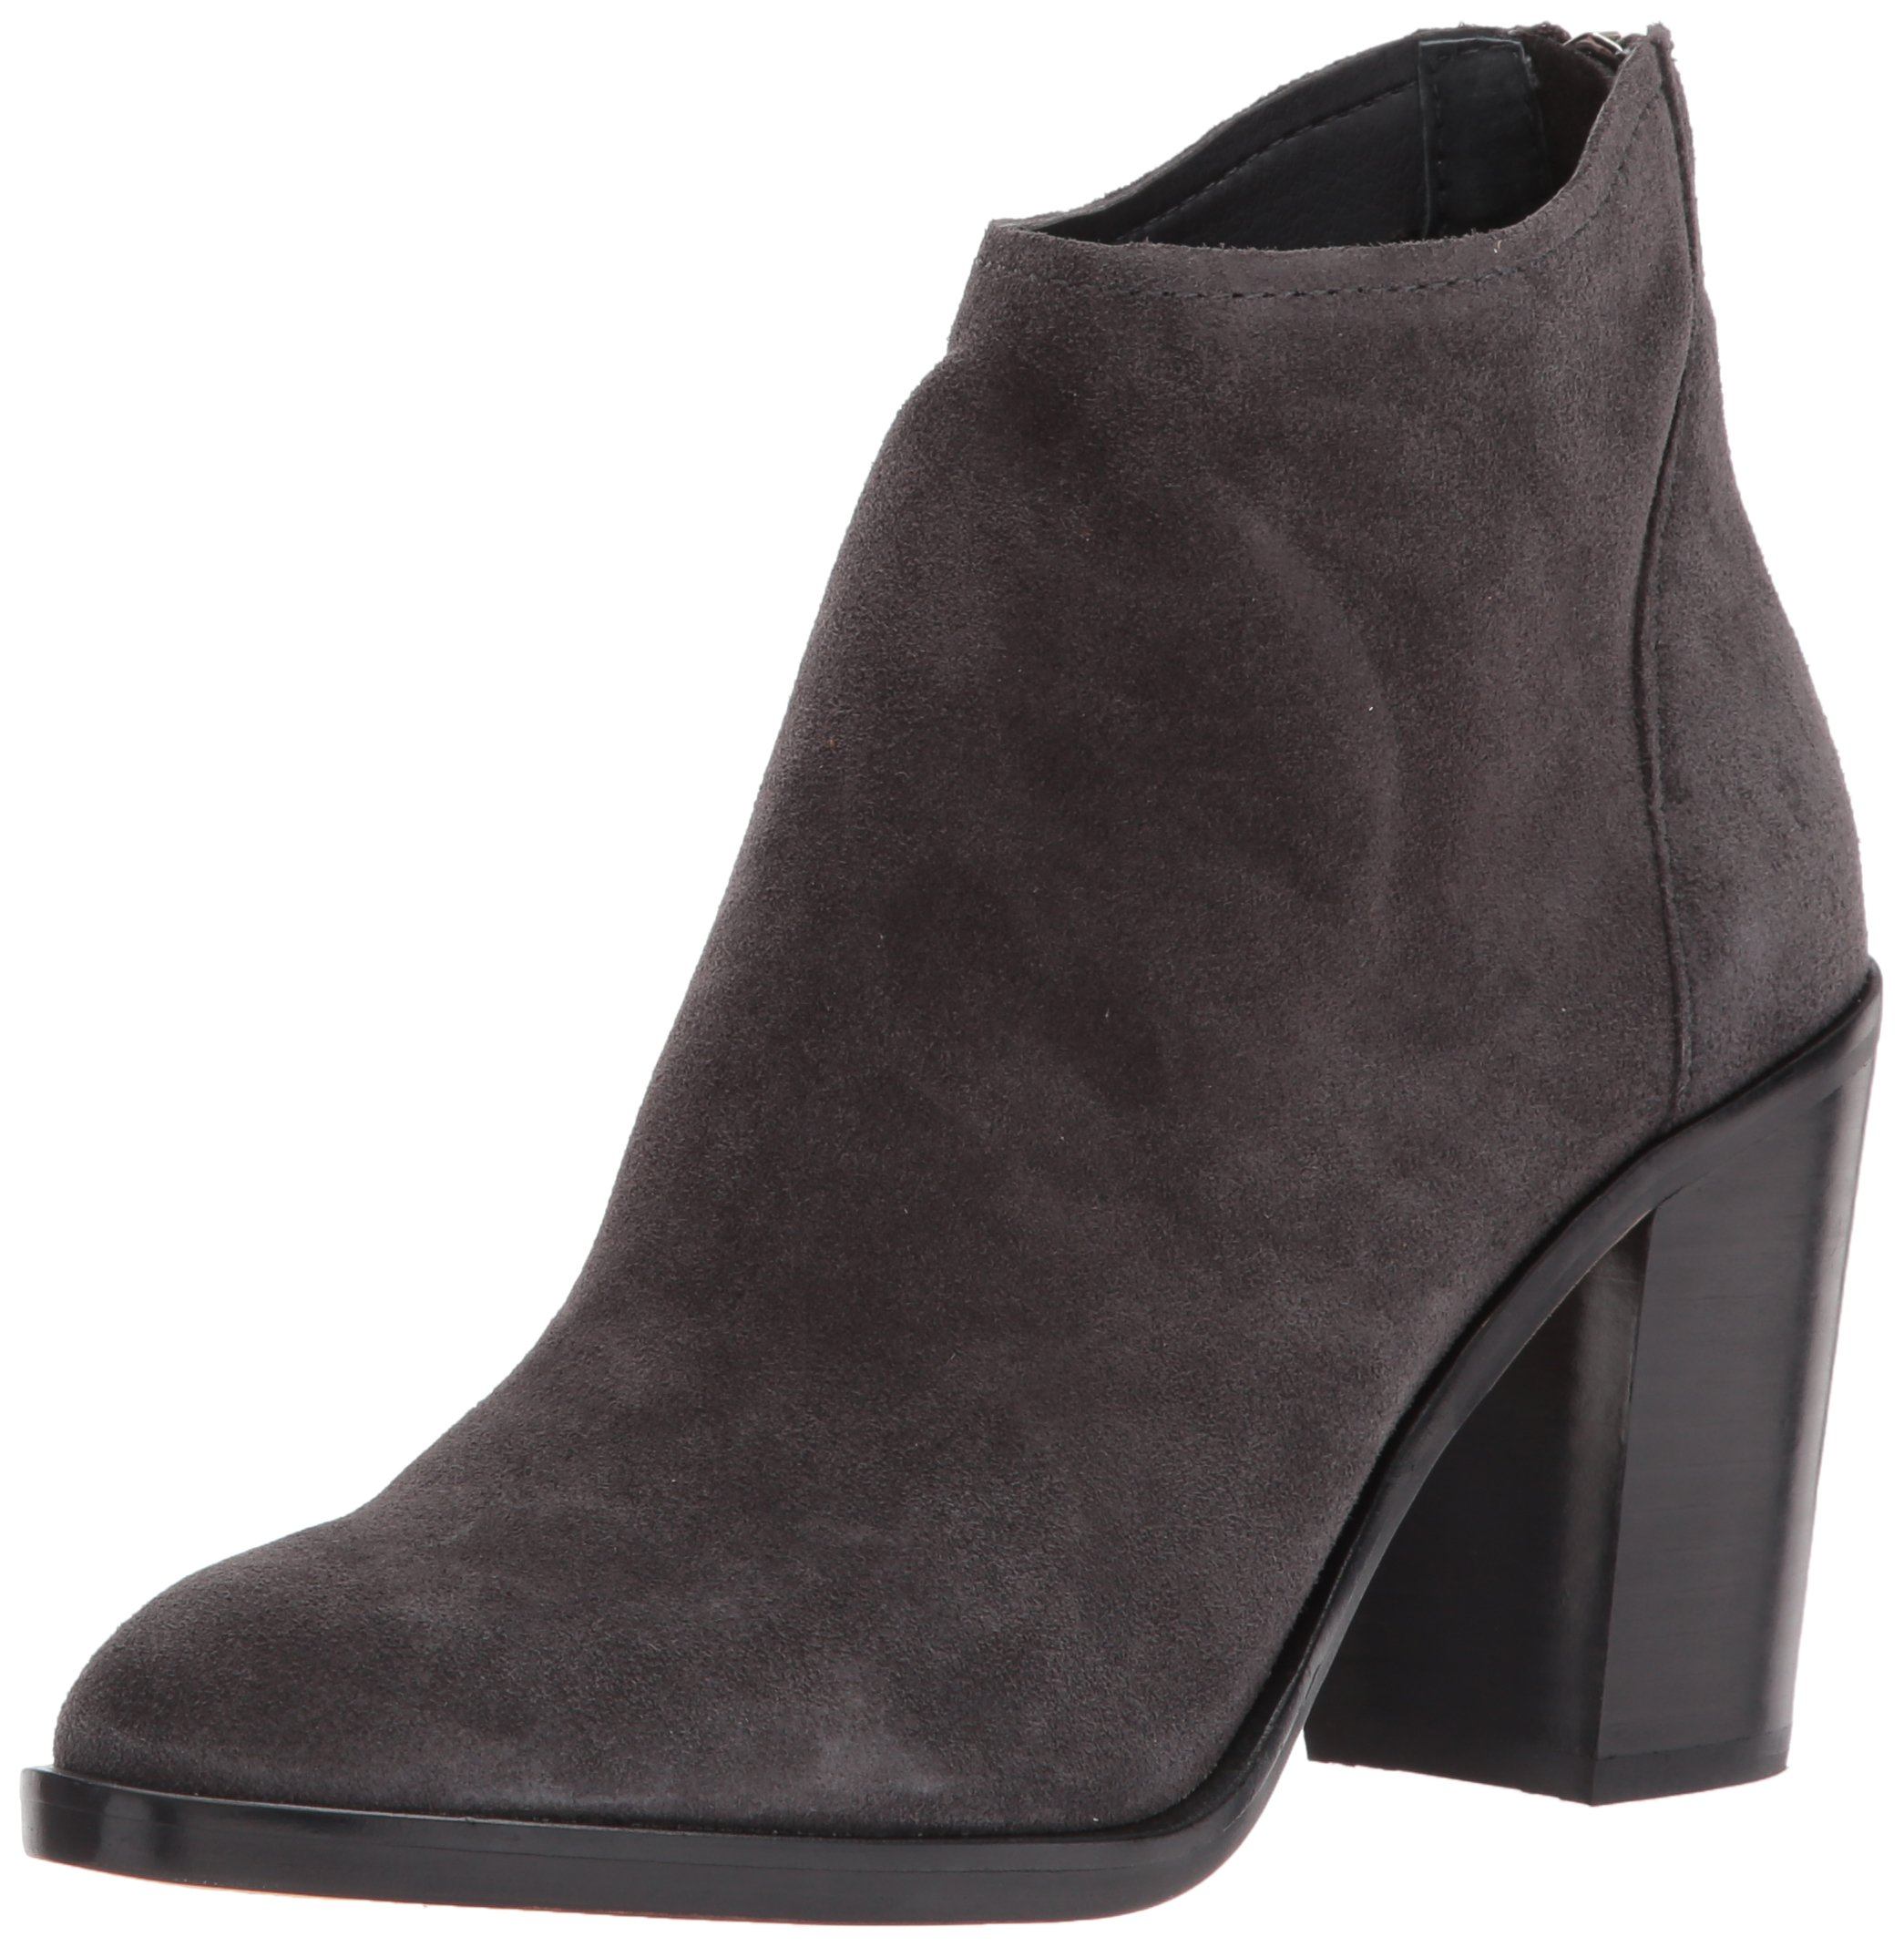 Dolce Vita Women's Stevie Ankle Boot, Anthracite Suede, 6 Medium US